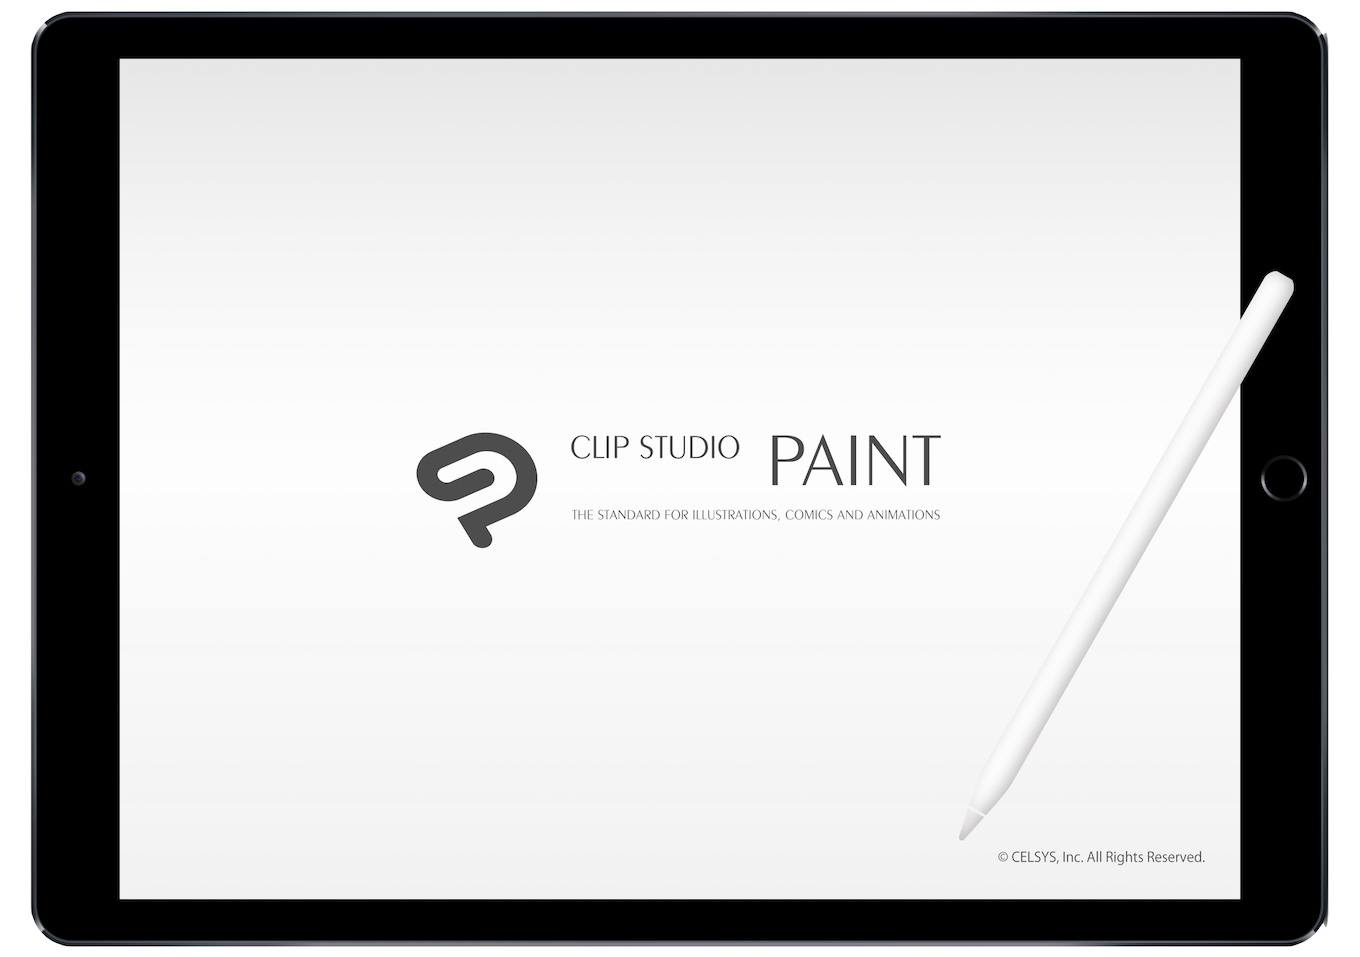 CLIP STUDIO PAINT EX for iPad